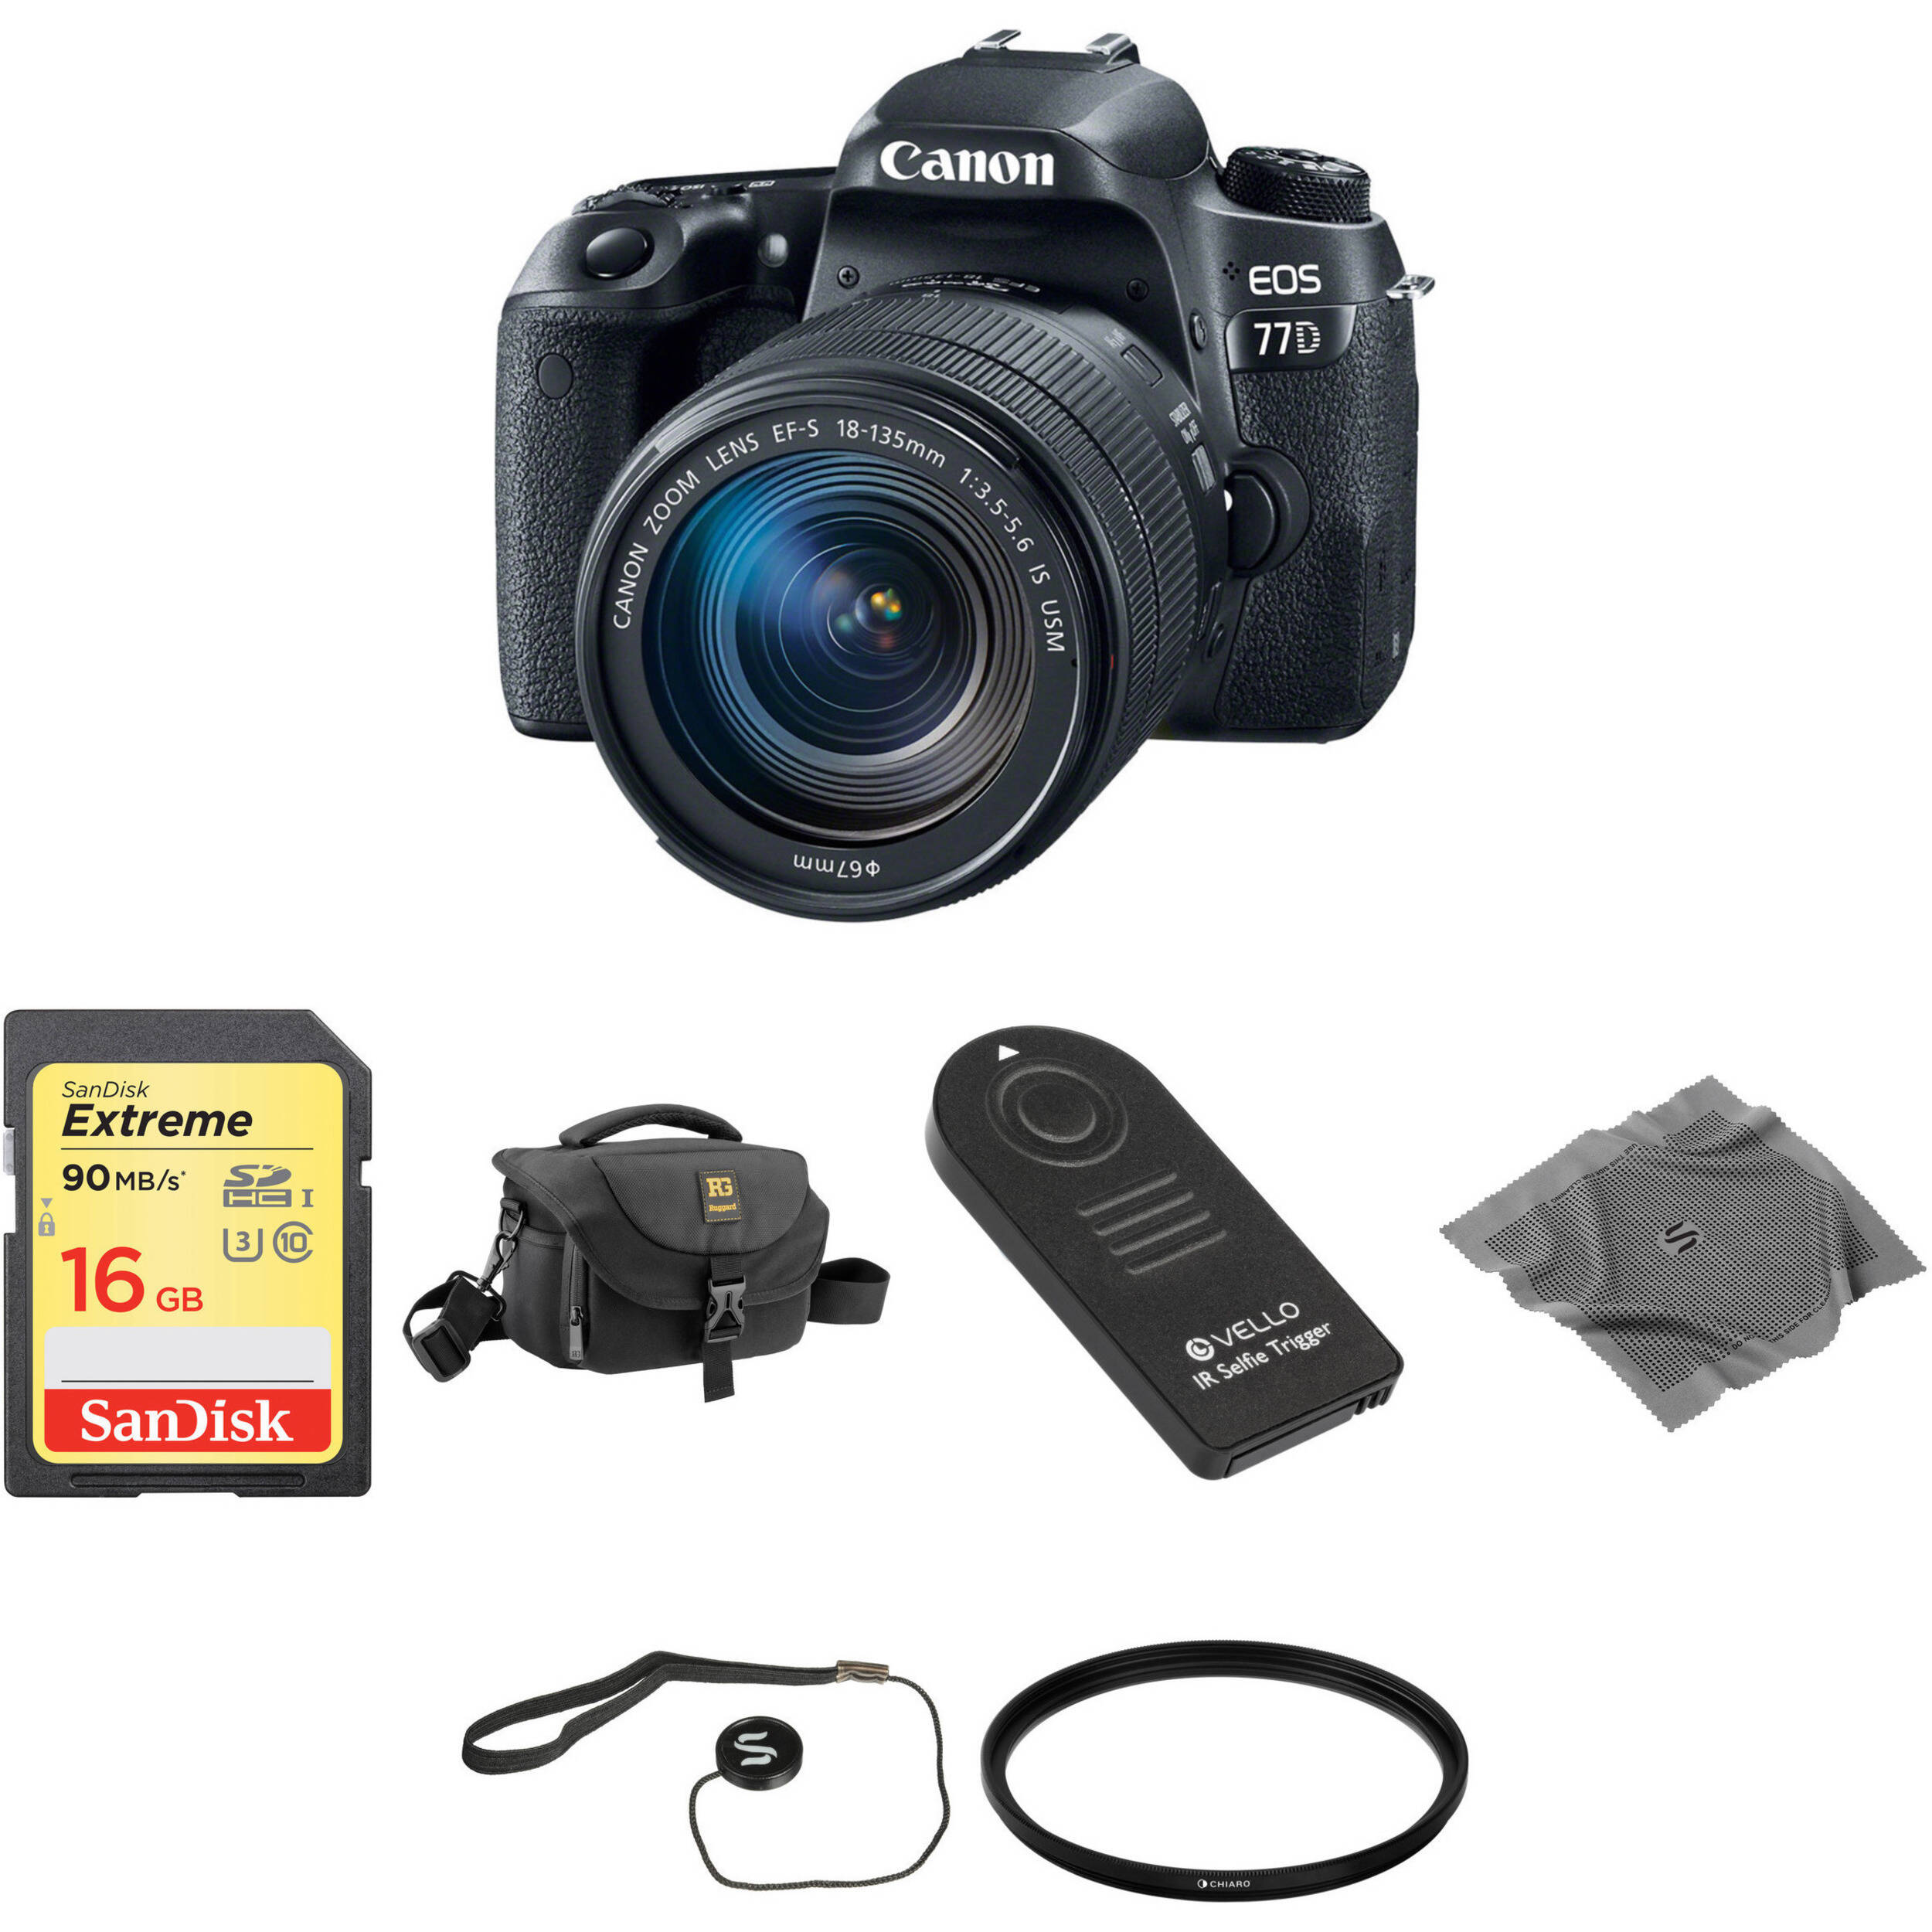 a261ca4c10047 Canon EOS 77D DSLR Camera with 18-135mm Lens Basic Kit B H Photo